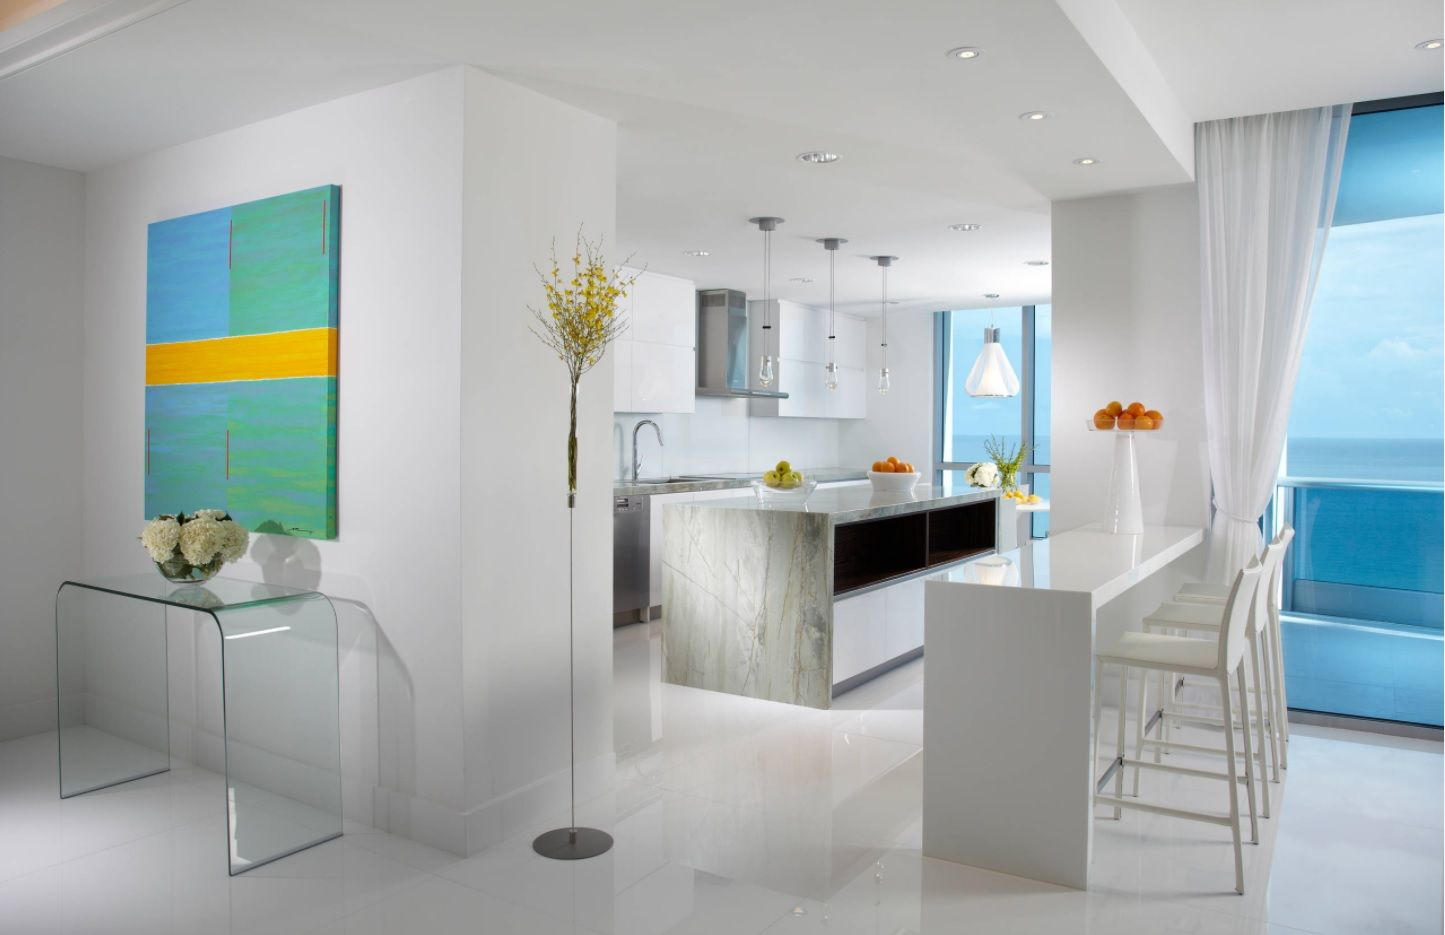 Zen Interior Design Concept for Your Home. White tranquil atmosphere